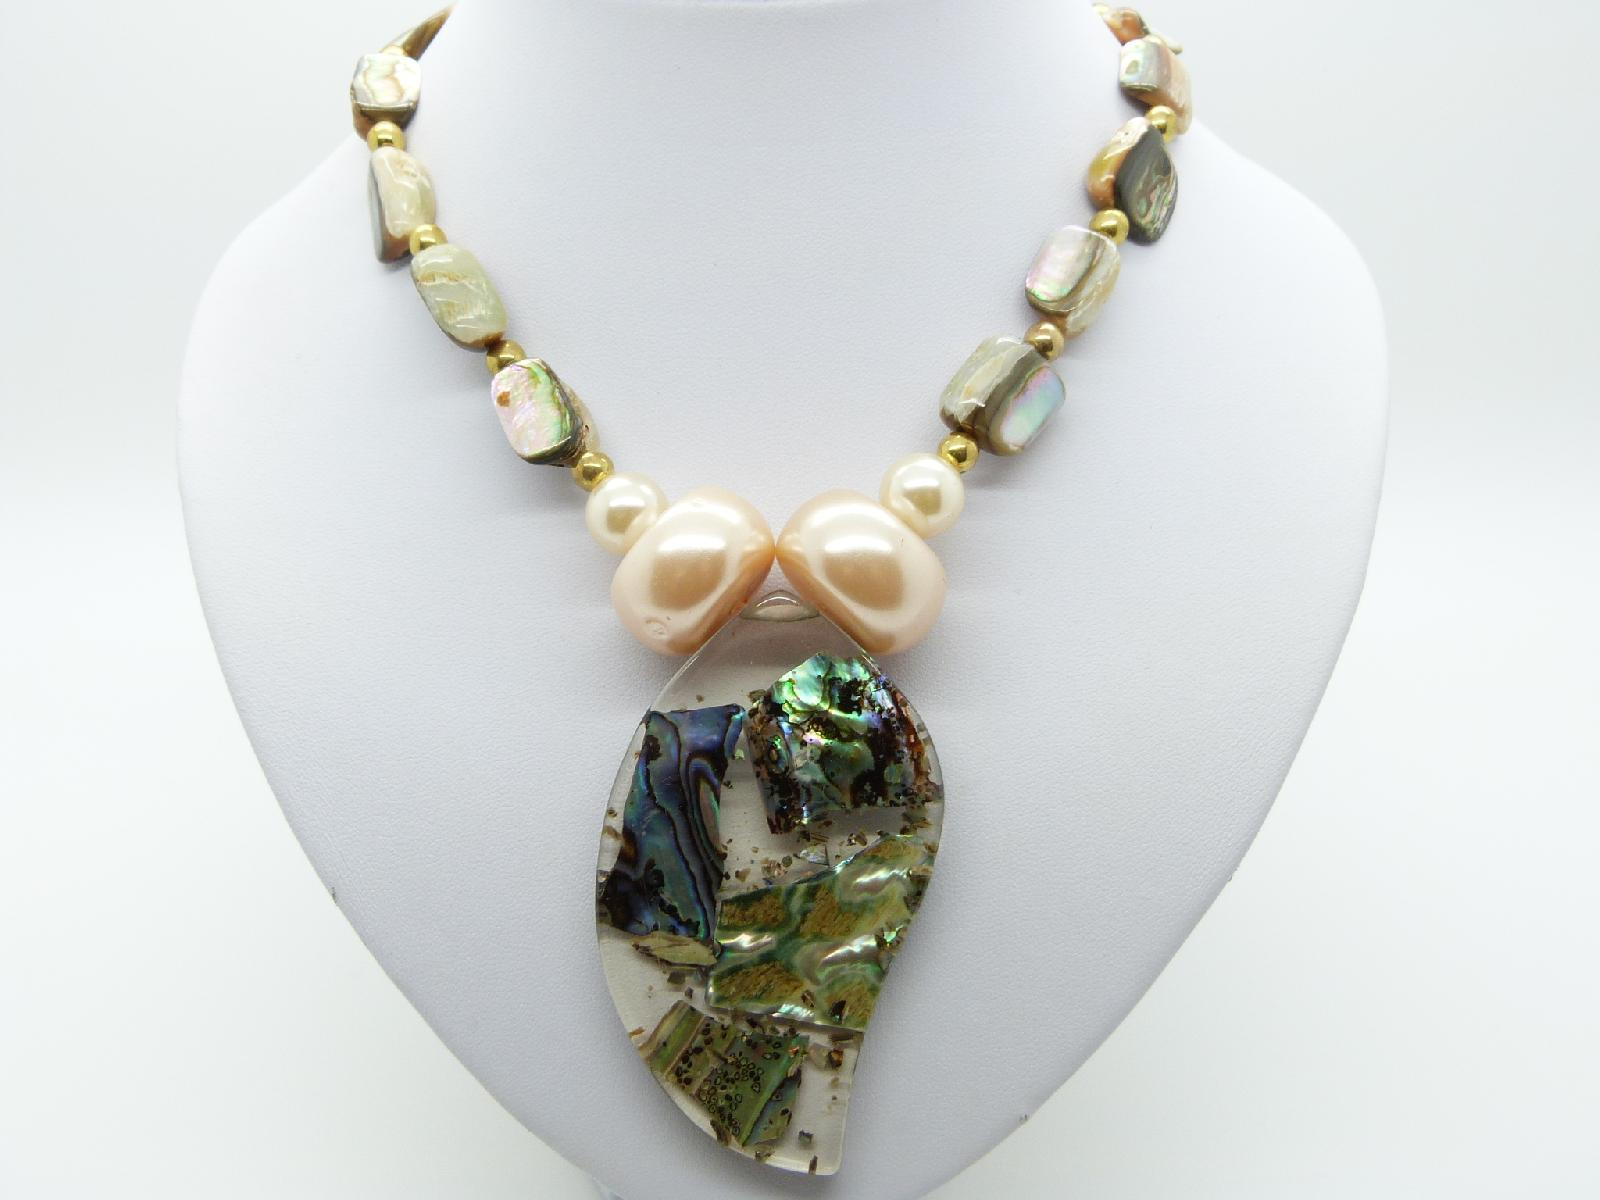 Vintage 50s Abalone Bead and Pearl Necklace with Fab Large Lucite Pendant